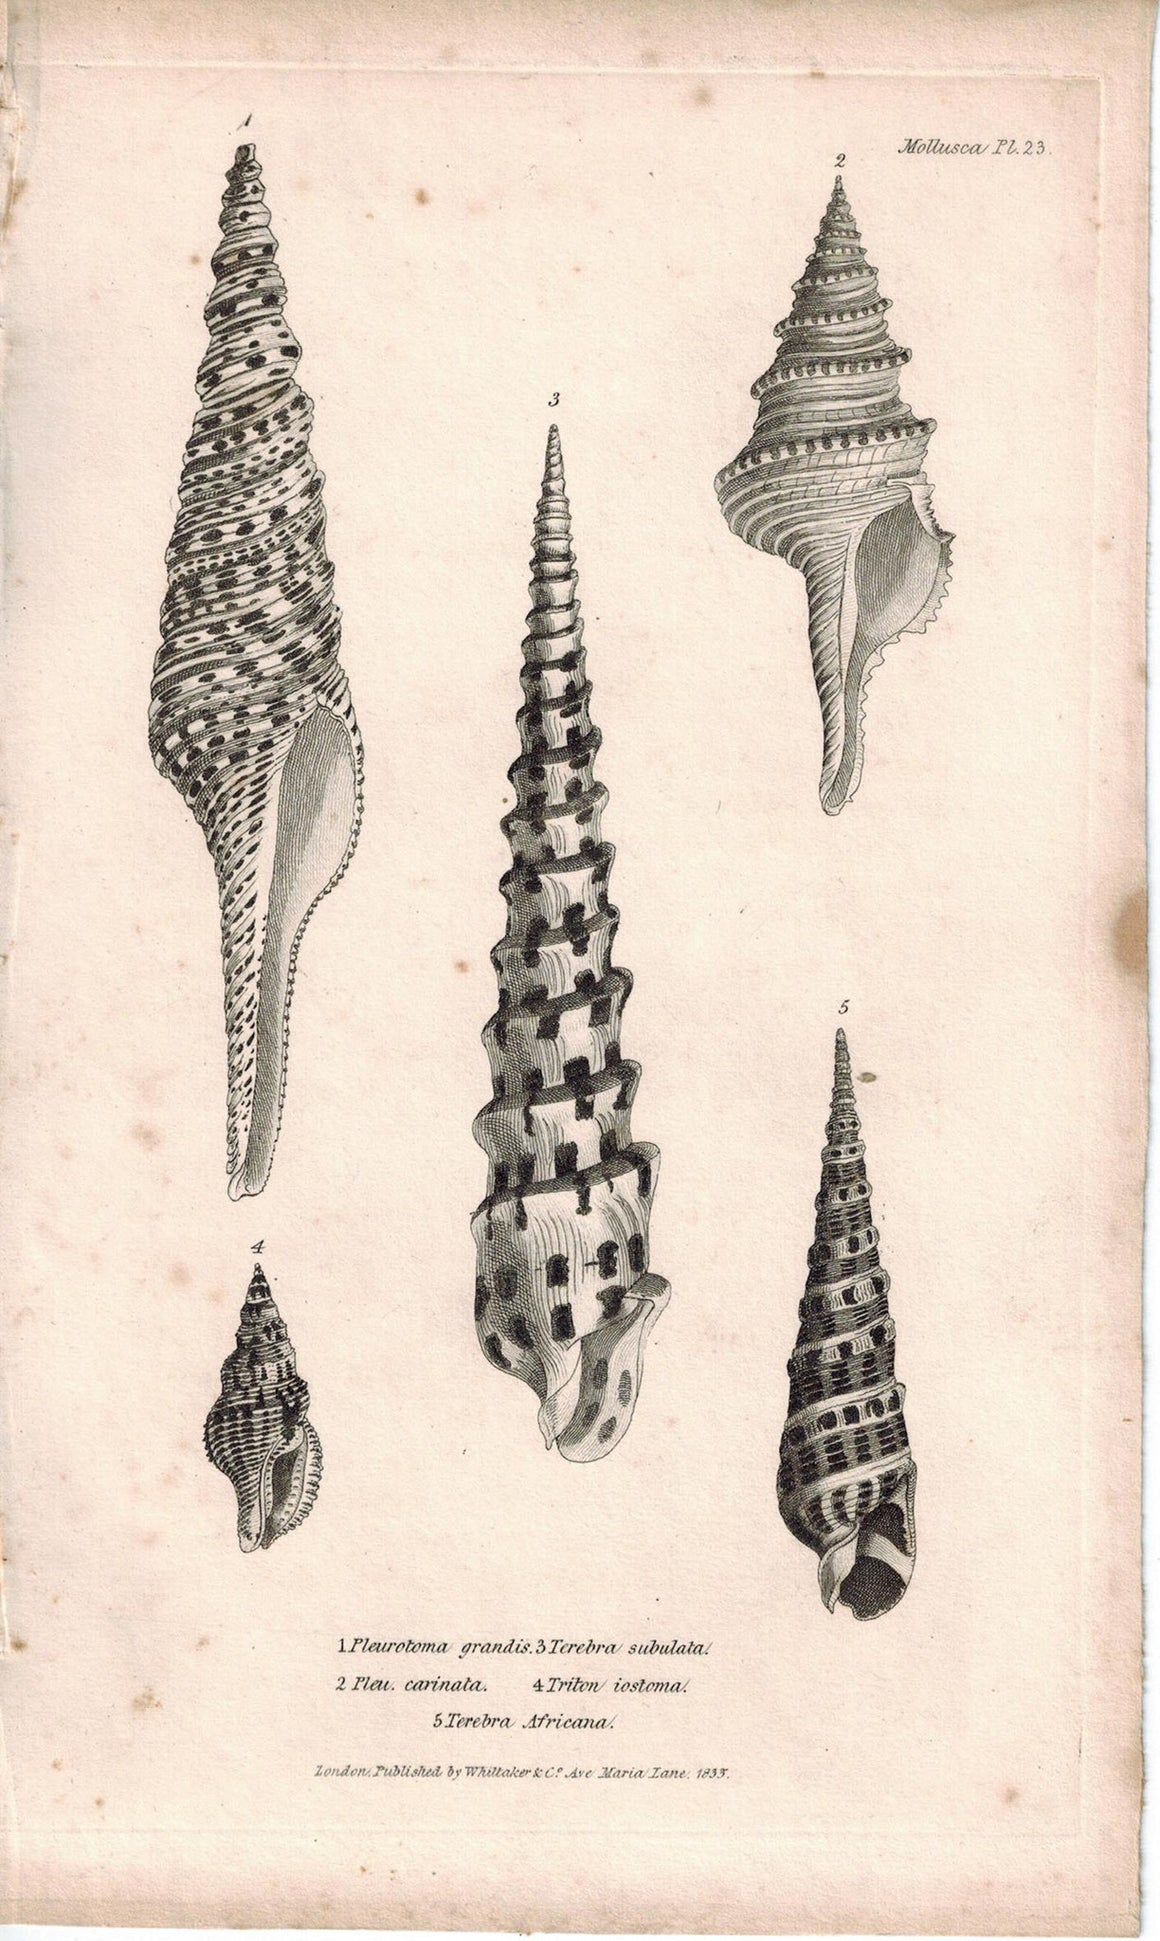 Sea Shell Mollusca Antique cuvier Print 1834 Pl 23